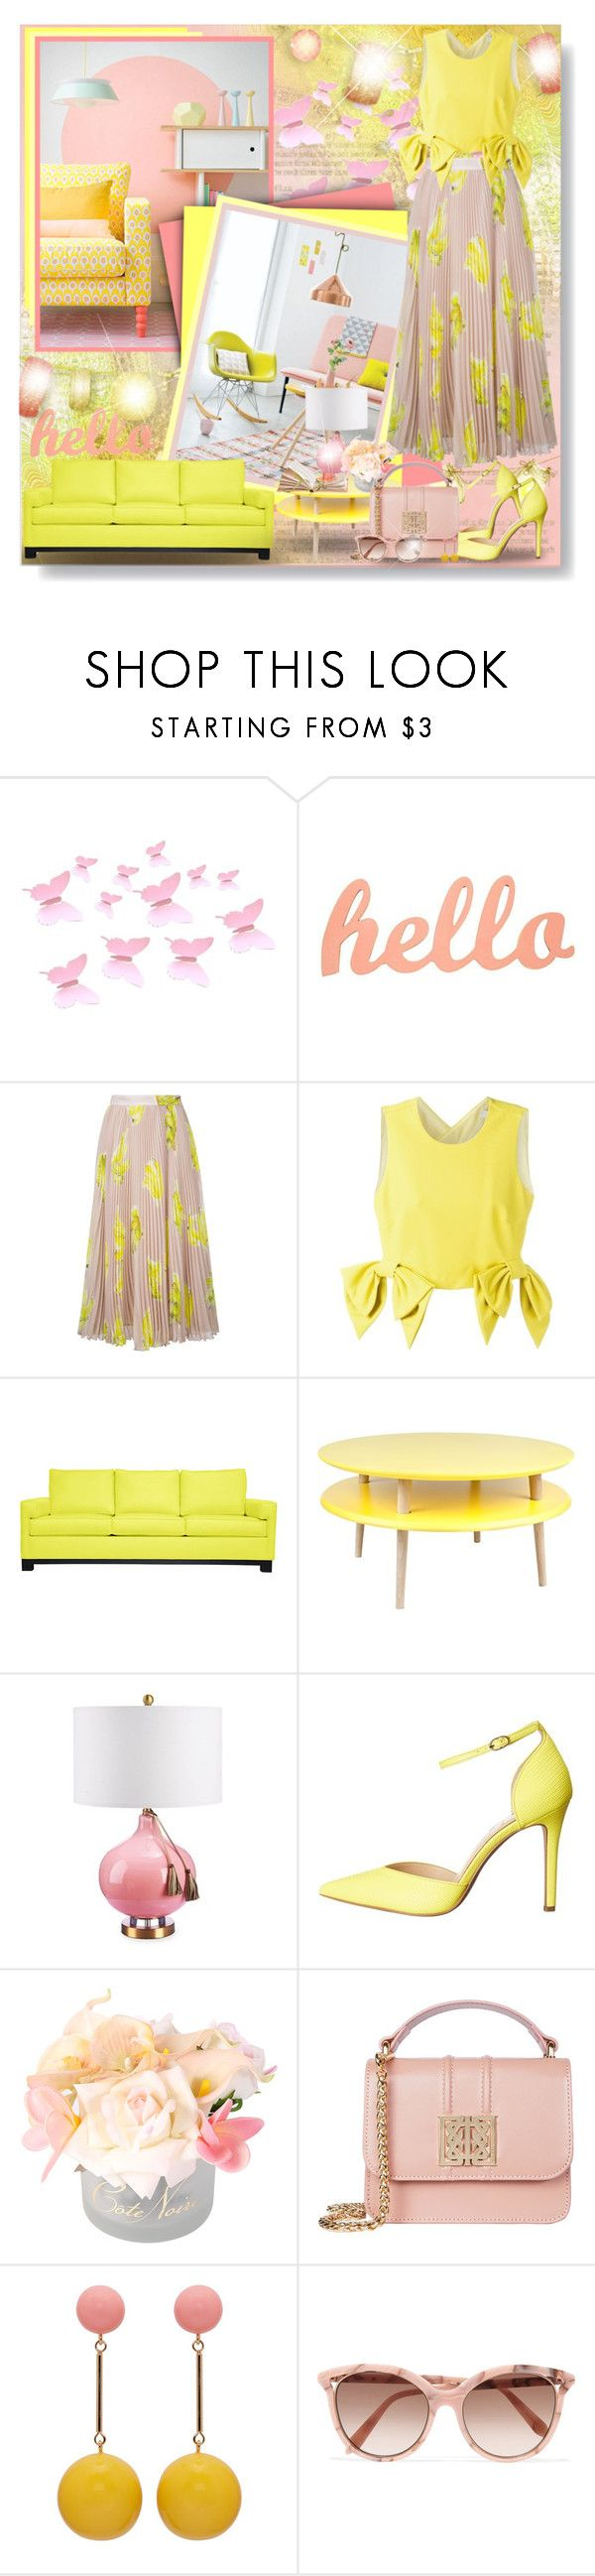 """THE FRESHEST! - Contest!"" by asia-12 ❤ liked on Polyvore featuring MSGM, cupcakes and cashmere, Jessica Simpson, J.W. Anderson and Victoria Beckham"